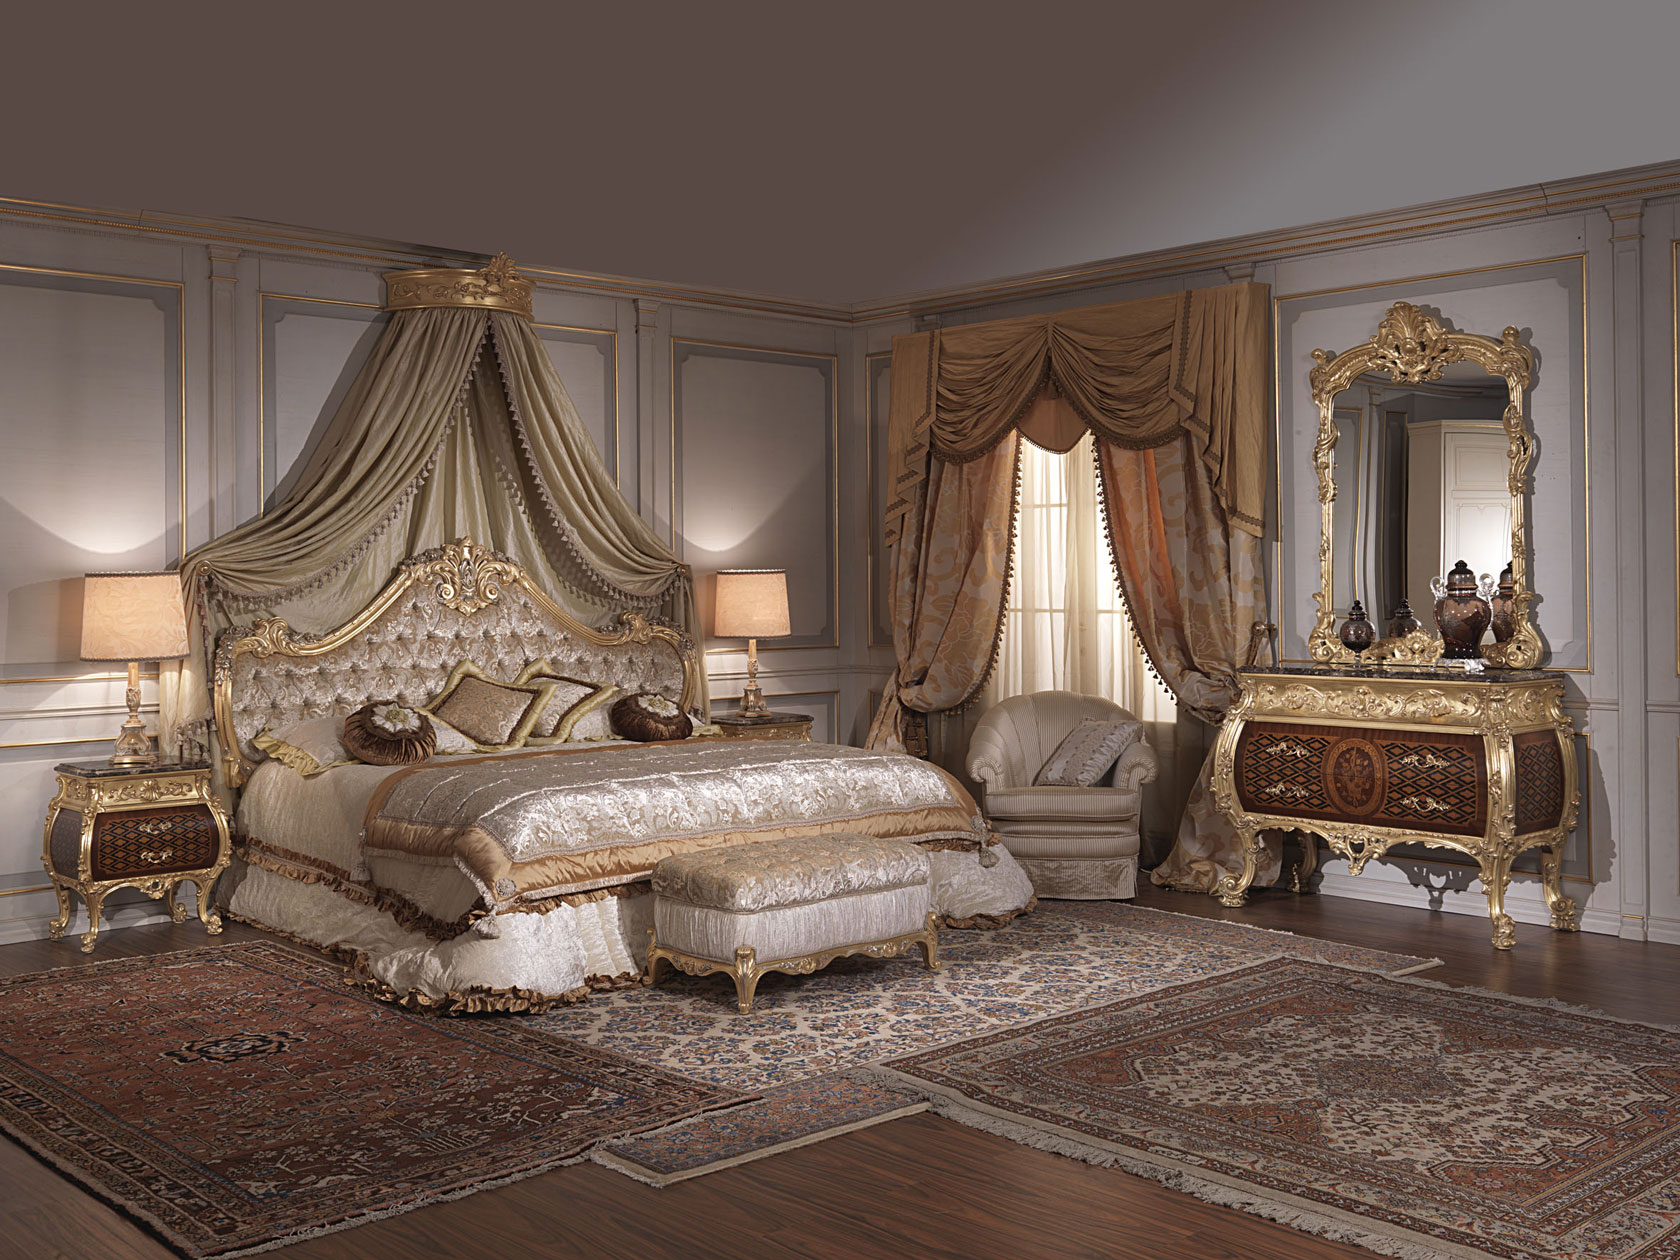 Meuble Louis 15 Classic Italian Bedroom 18th Century And Louis Xv